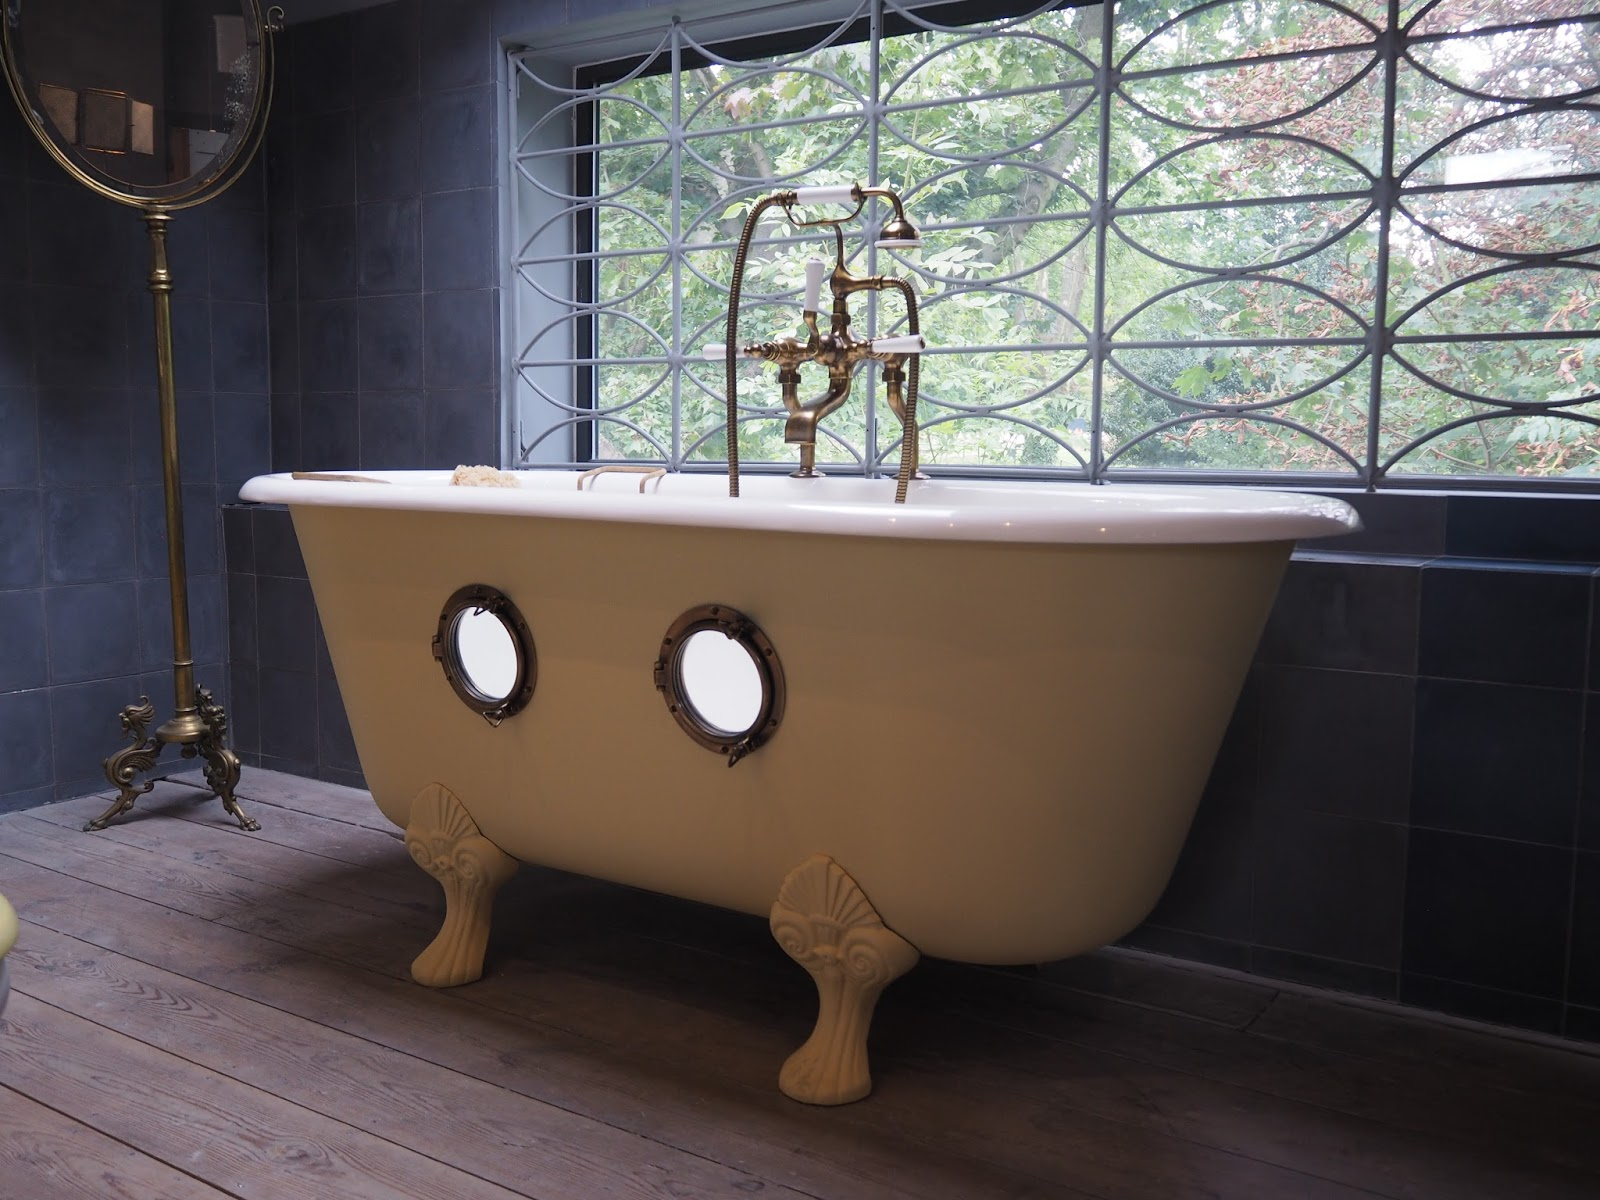 bathroom fixtures and fittings, hellopeagreen blog, bathroom design, traditional bath design, buy vintage bath